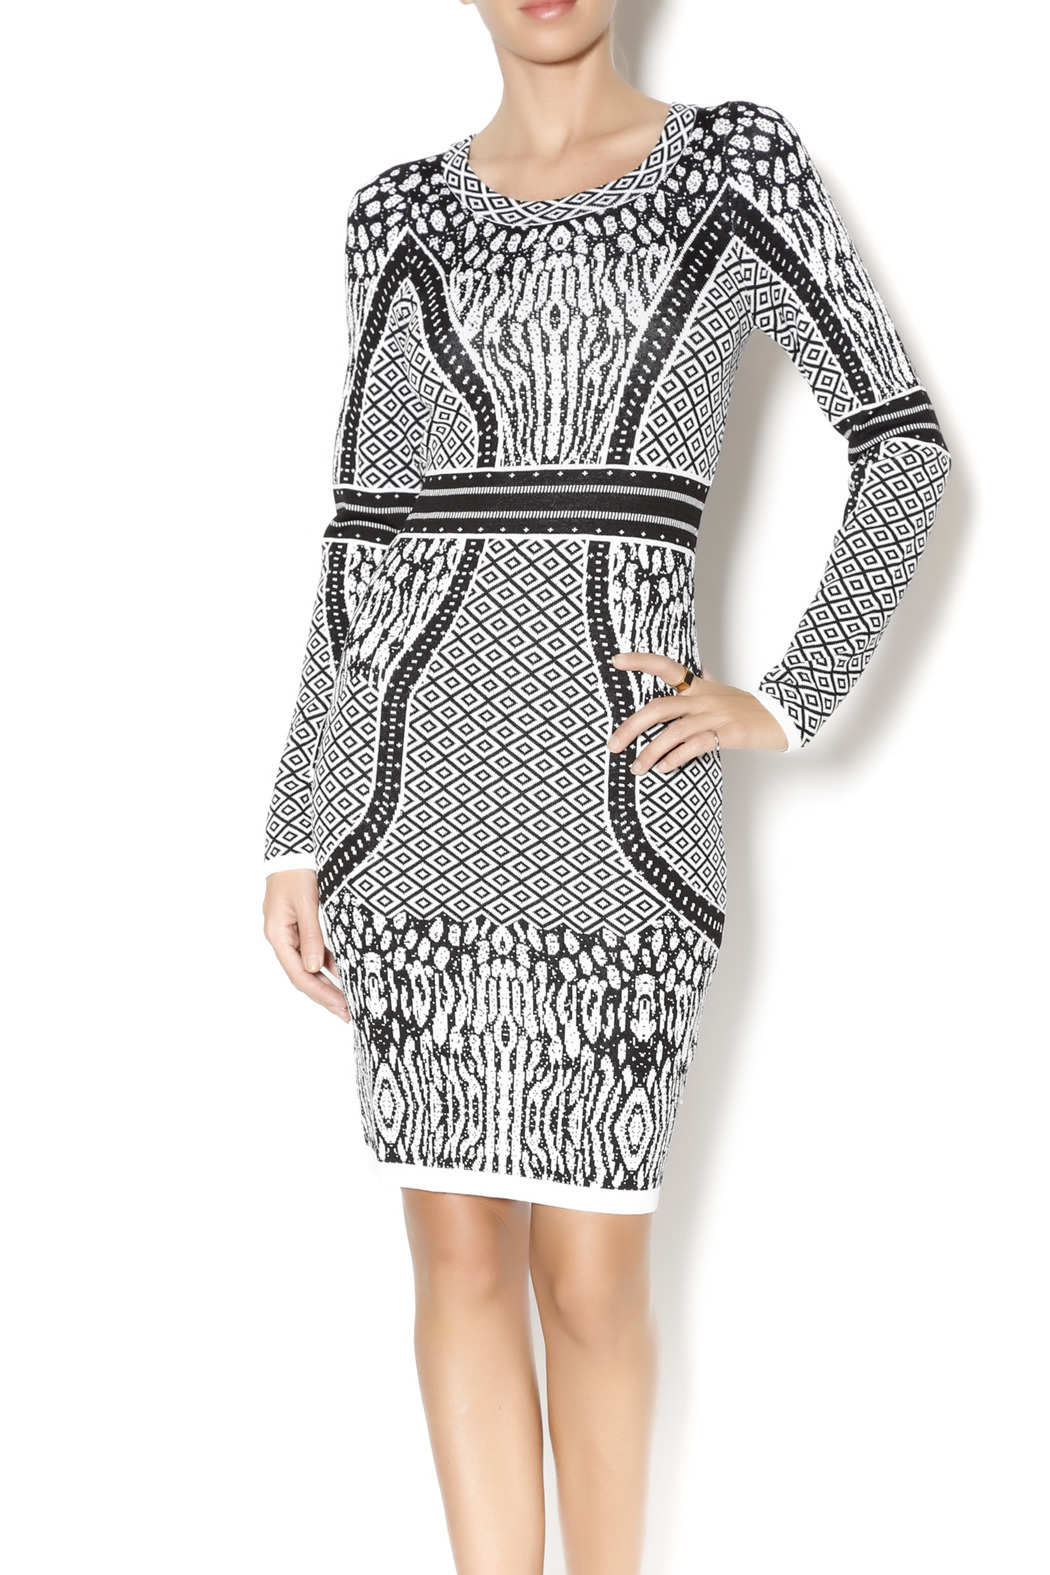 Charlie jade bodycon sweater dress from pennsylvania by for Sweater over wedding dress